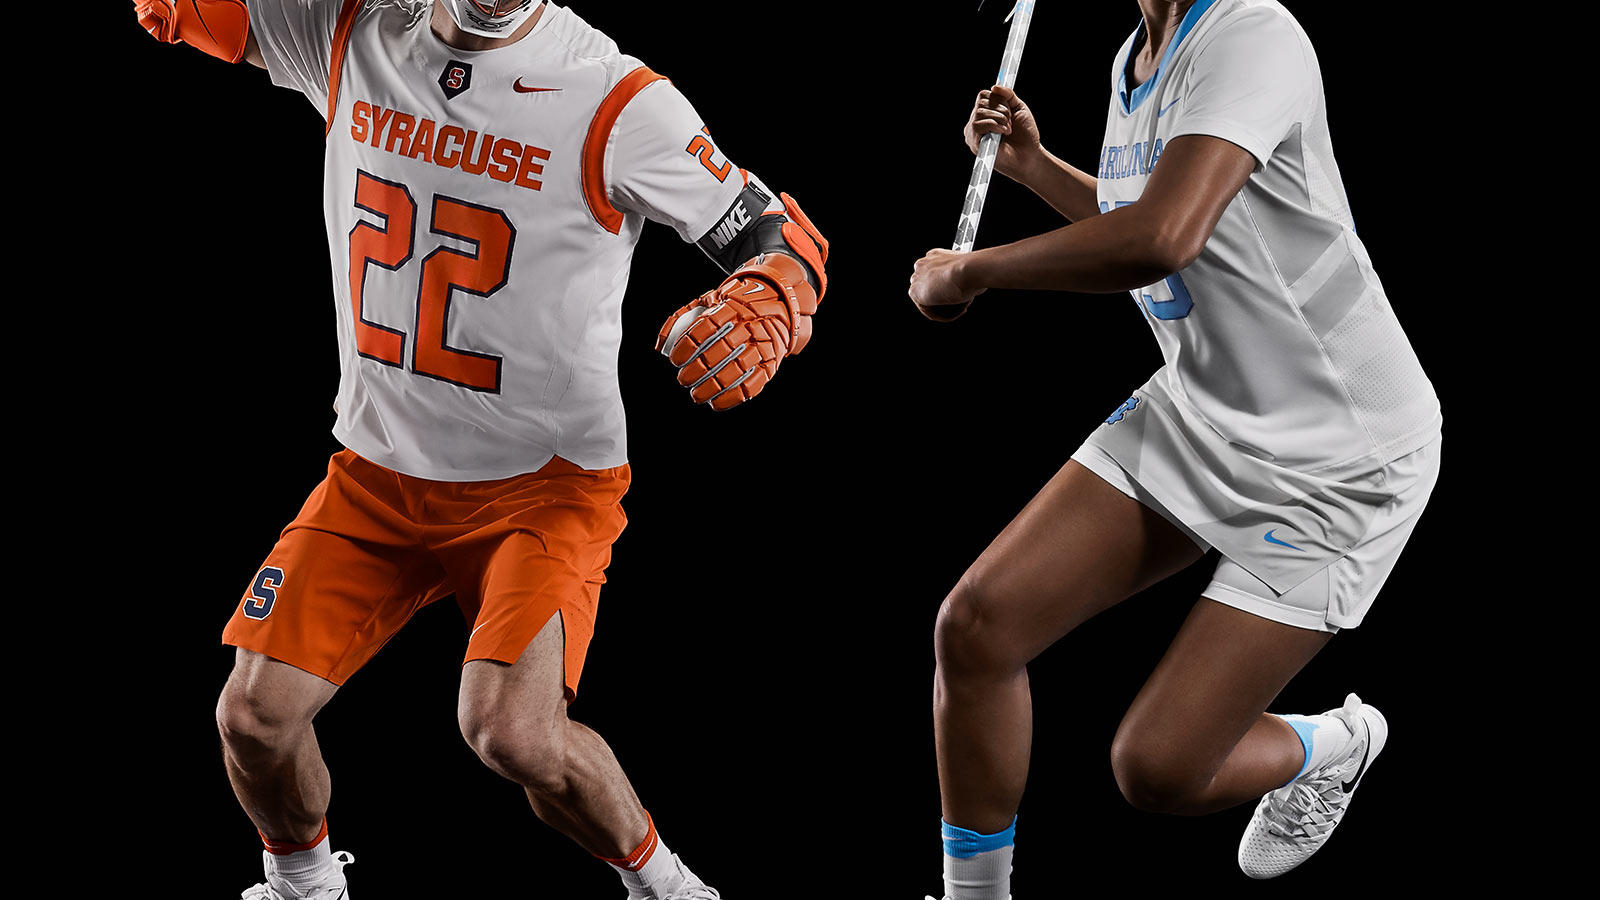 Nike Lacrosse Defines the Future of the